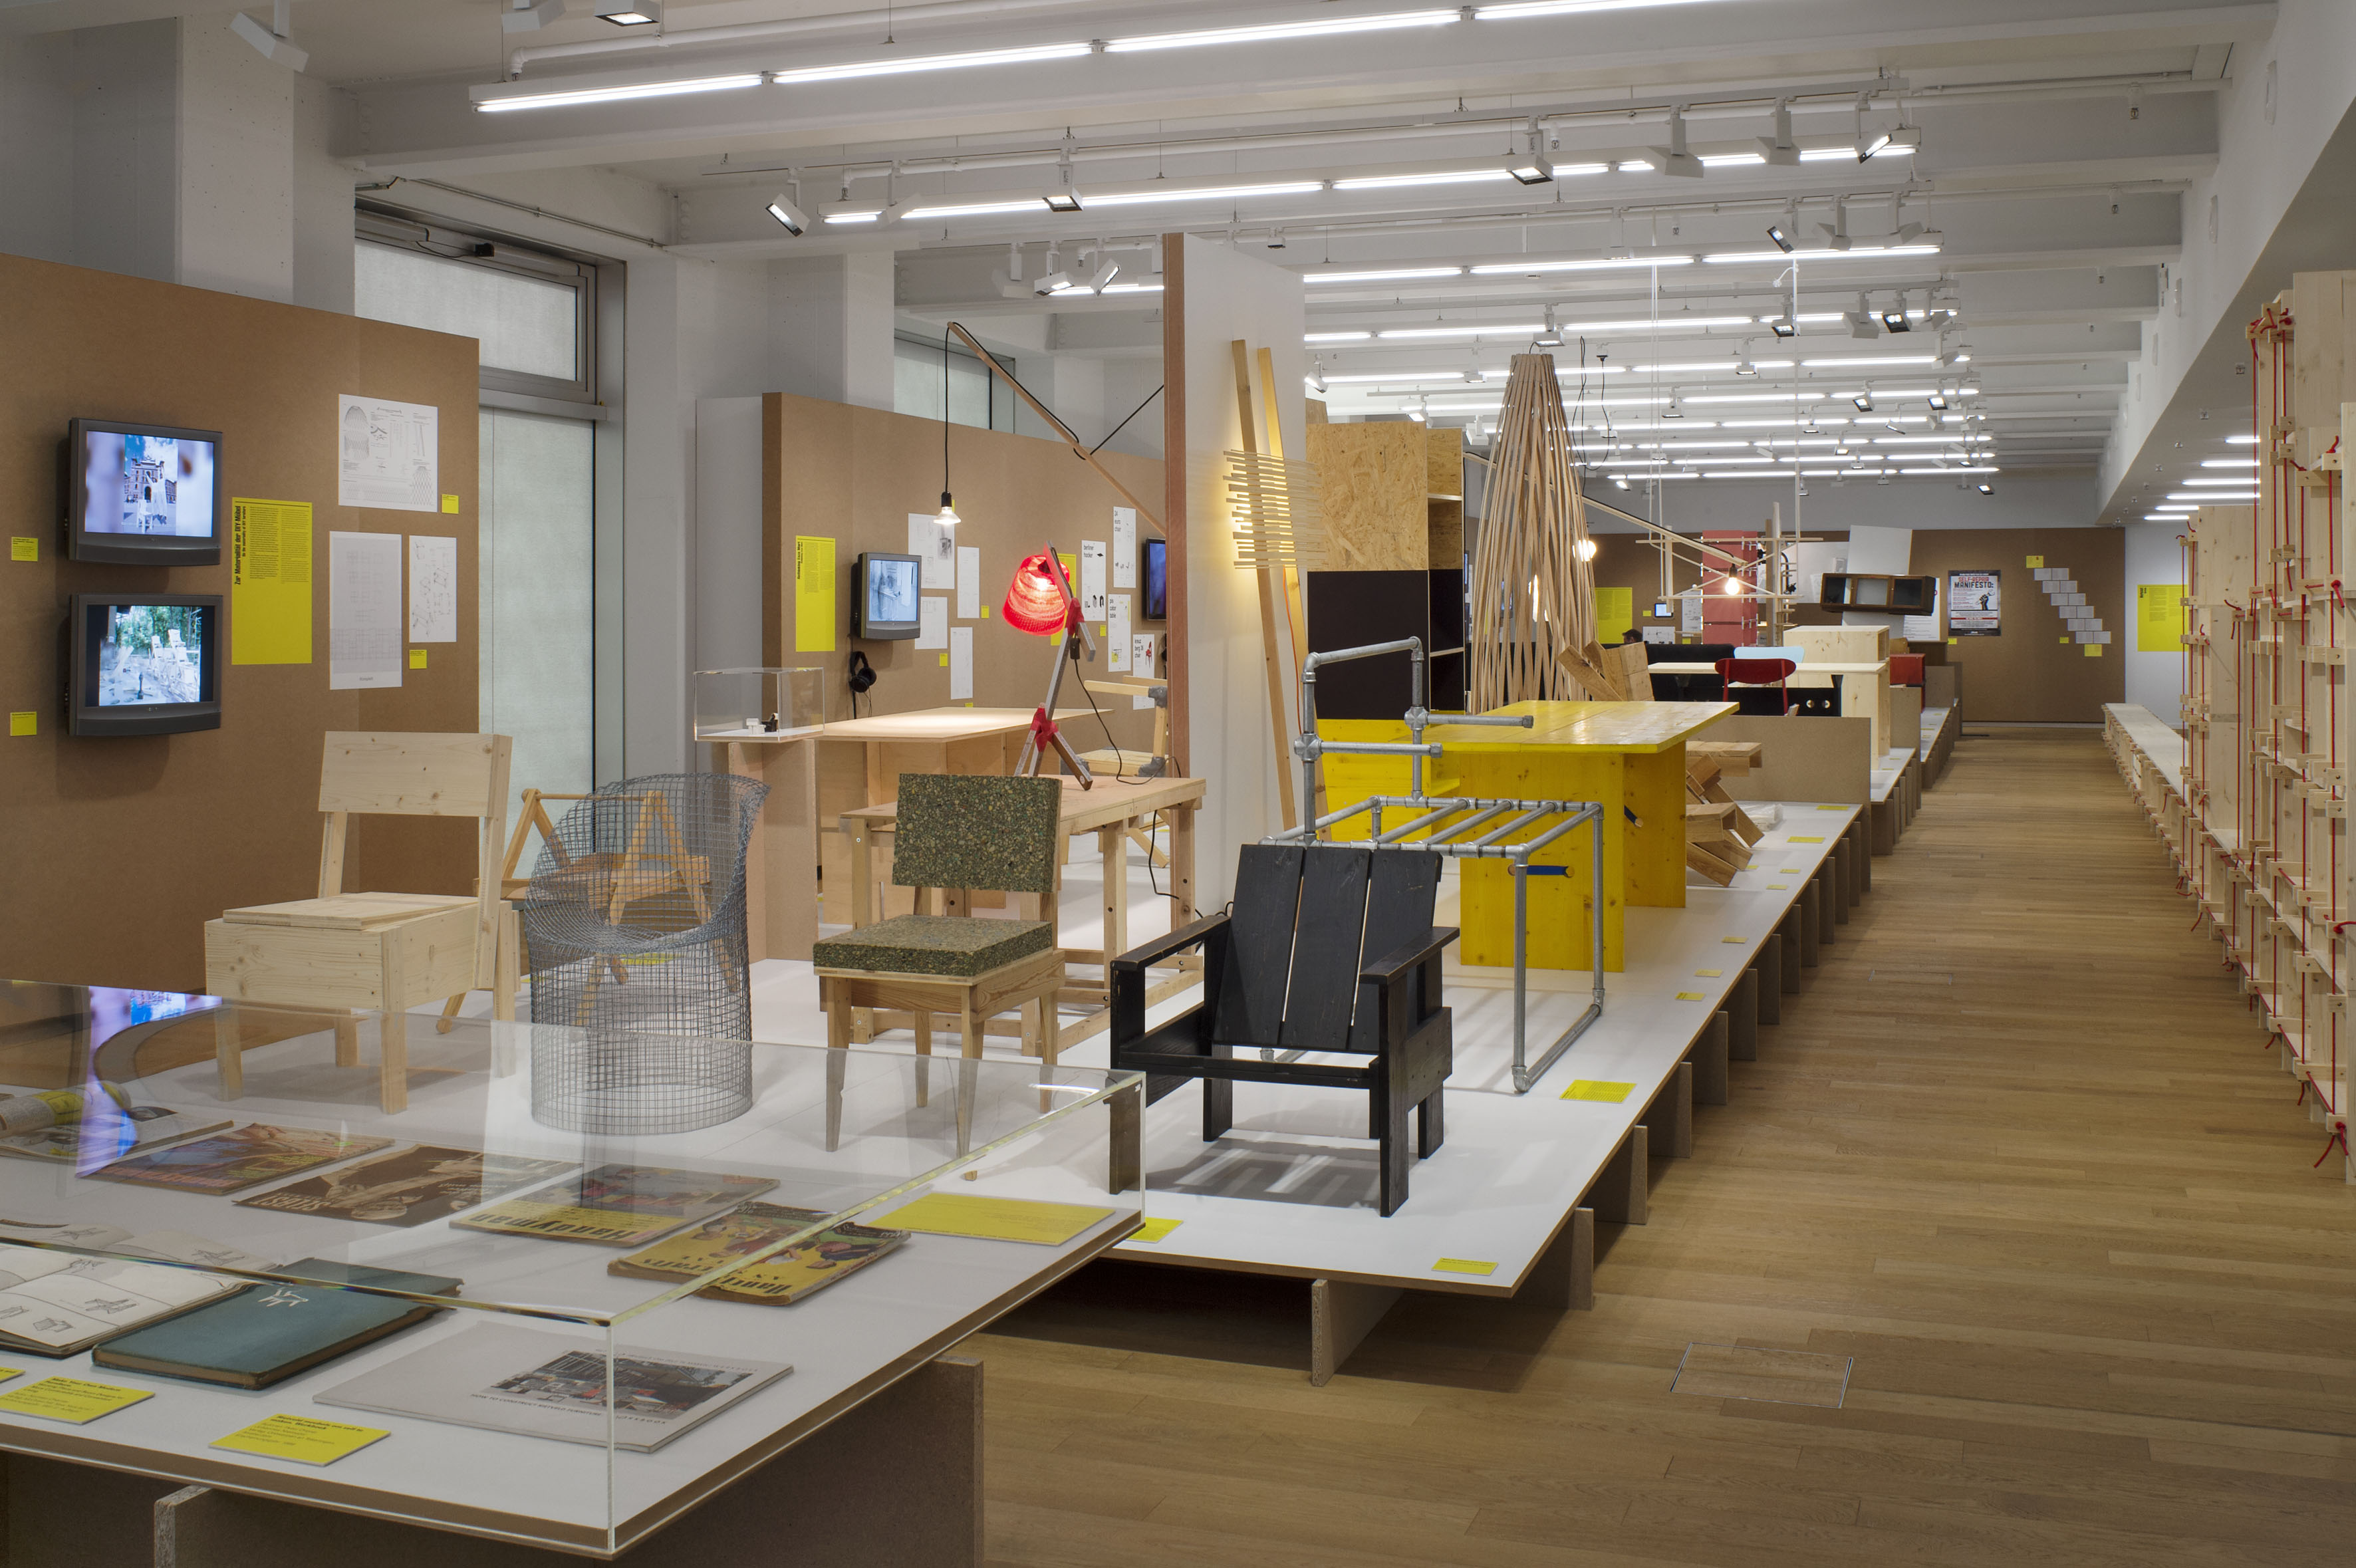 Penccil diy design exhibition do it yourself design at museum fr gestaltung schaudepot 20 march to 31 may 2015 photo regula bearth zhdk solutioingenieria Images